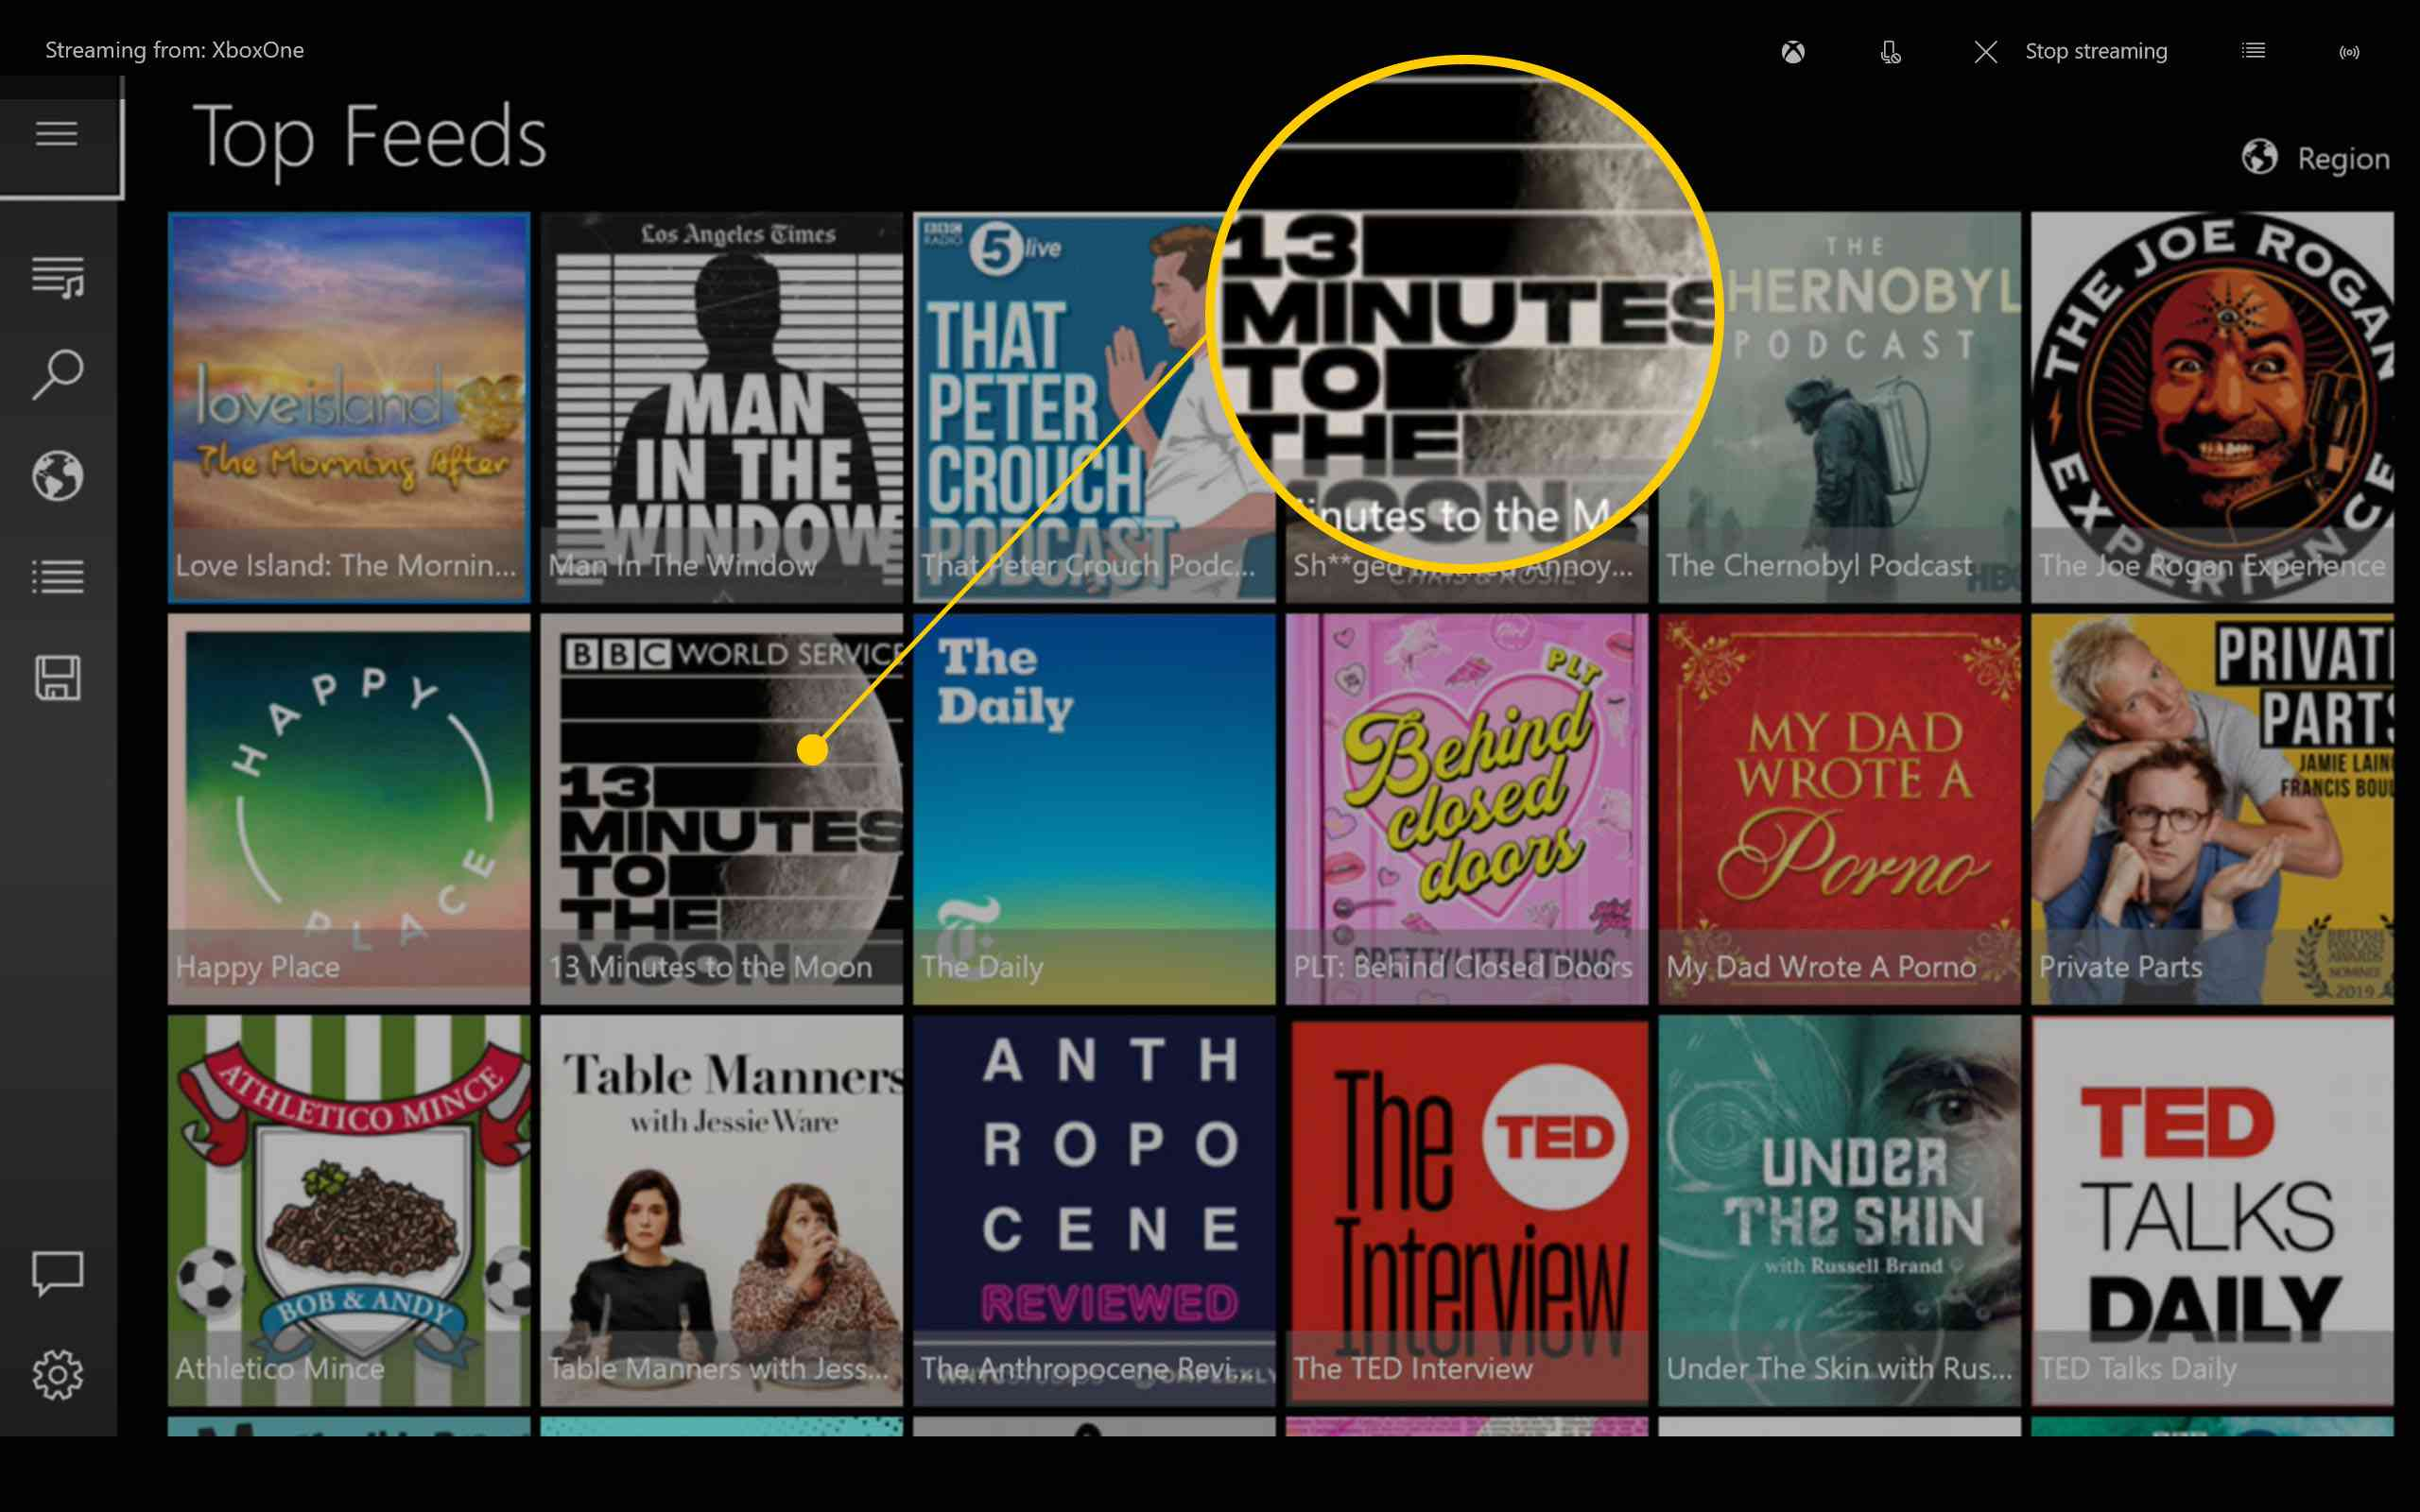 Xbox One Casts app with top feeds podcast apps listed as thumbnails